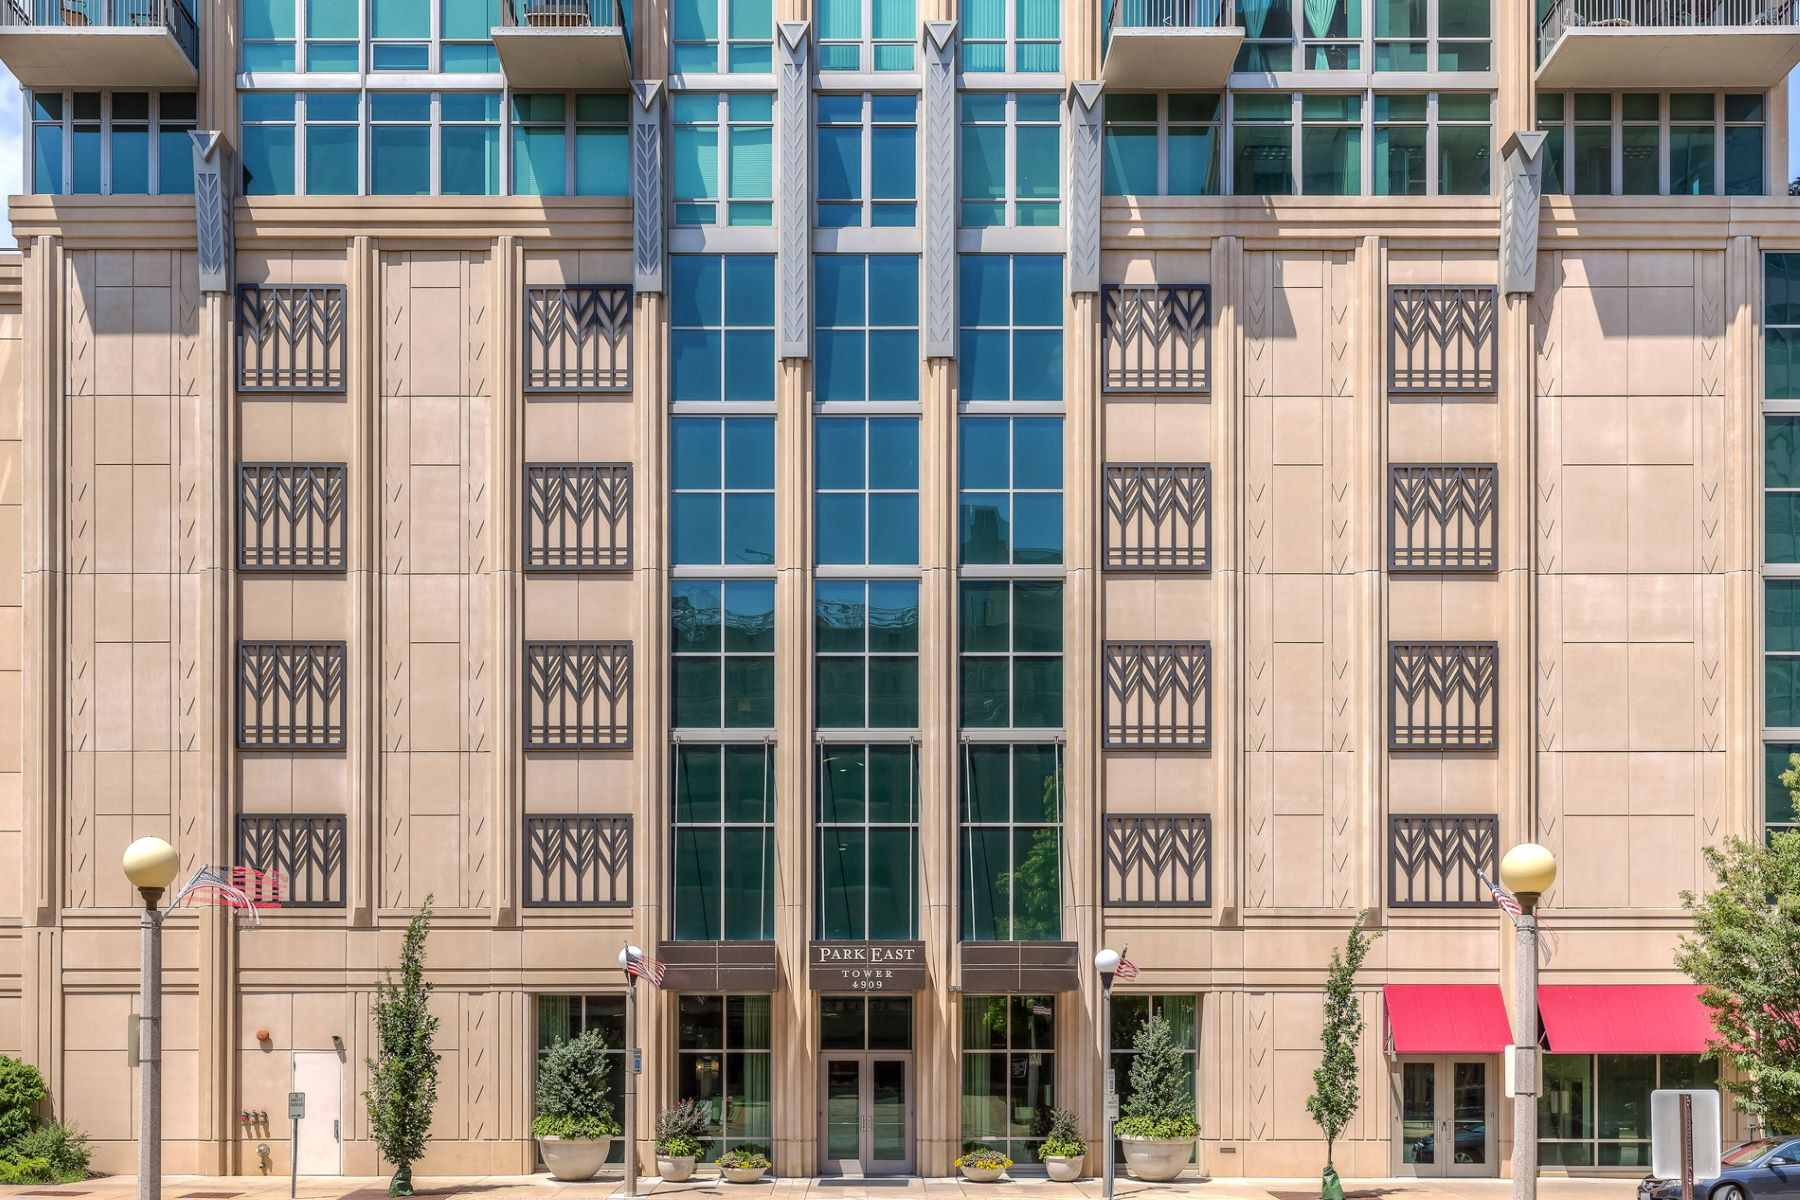 Additional photo for property listing at Laclede Ave 4909 Laclede Ave # 1605 St. Louis, Missouri 63108 United States